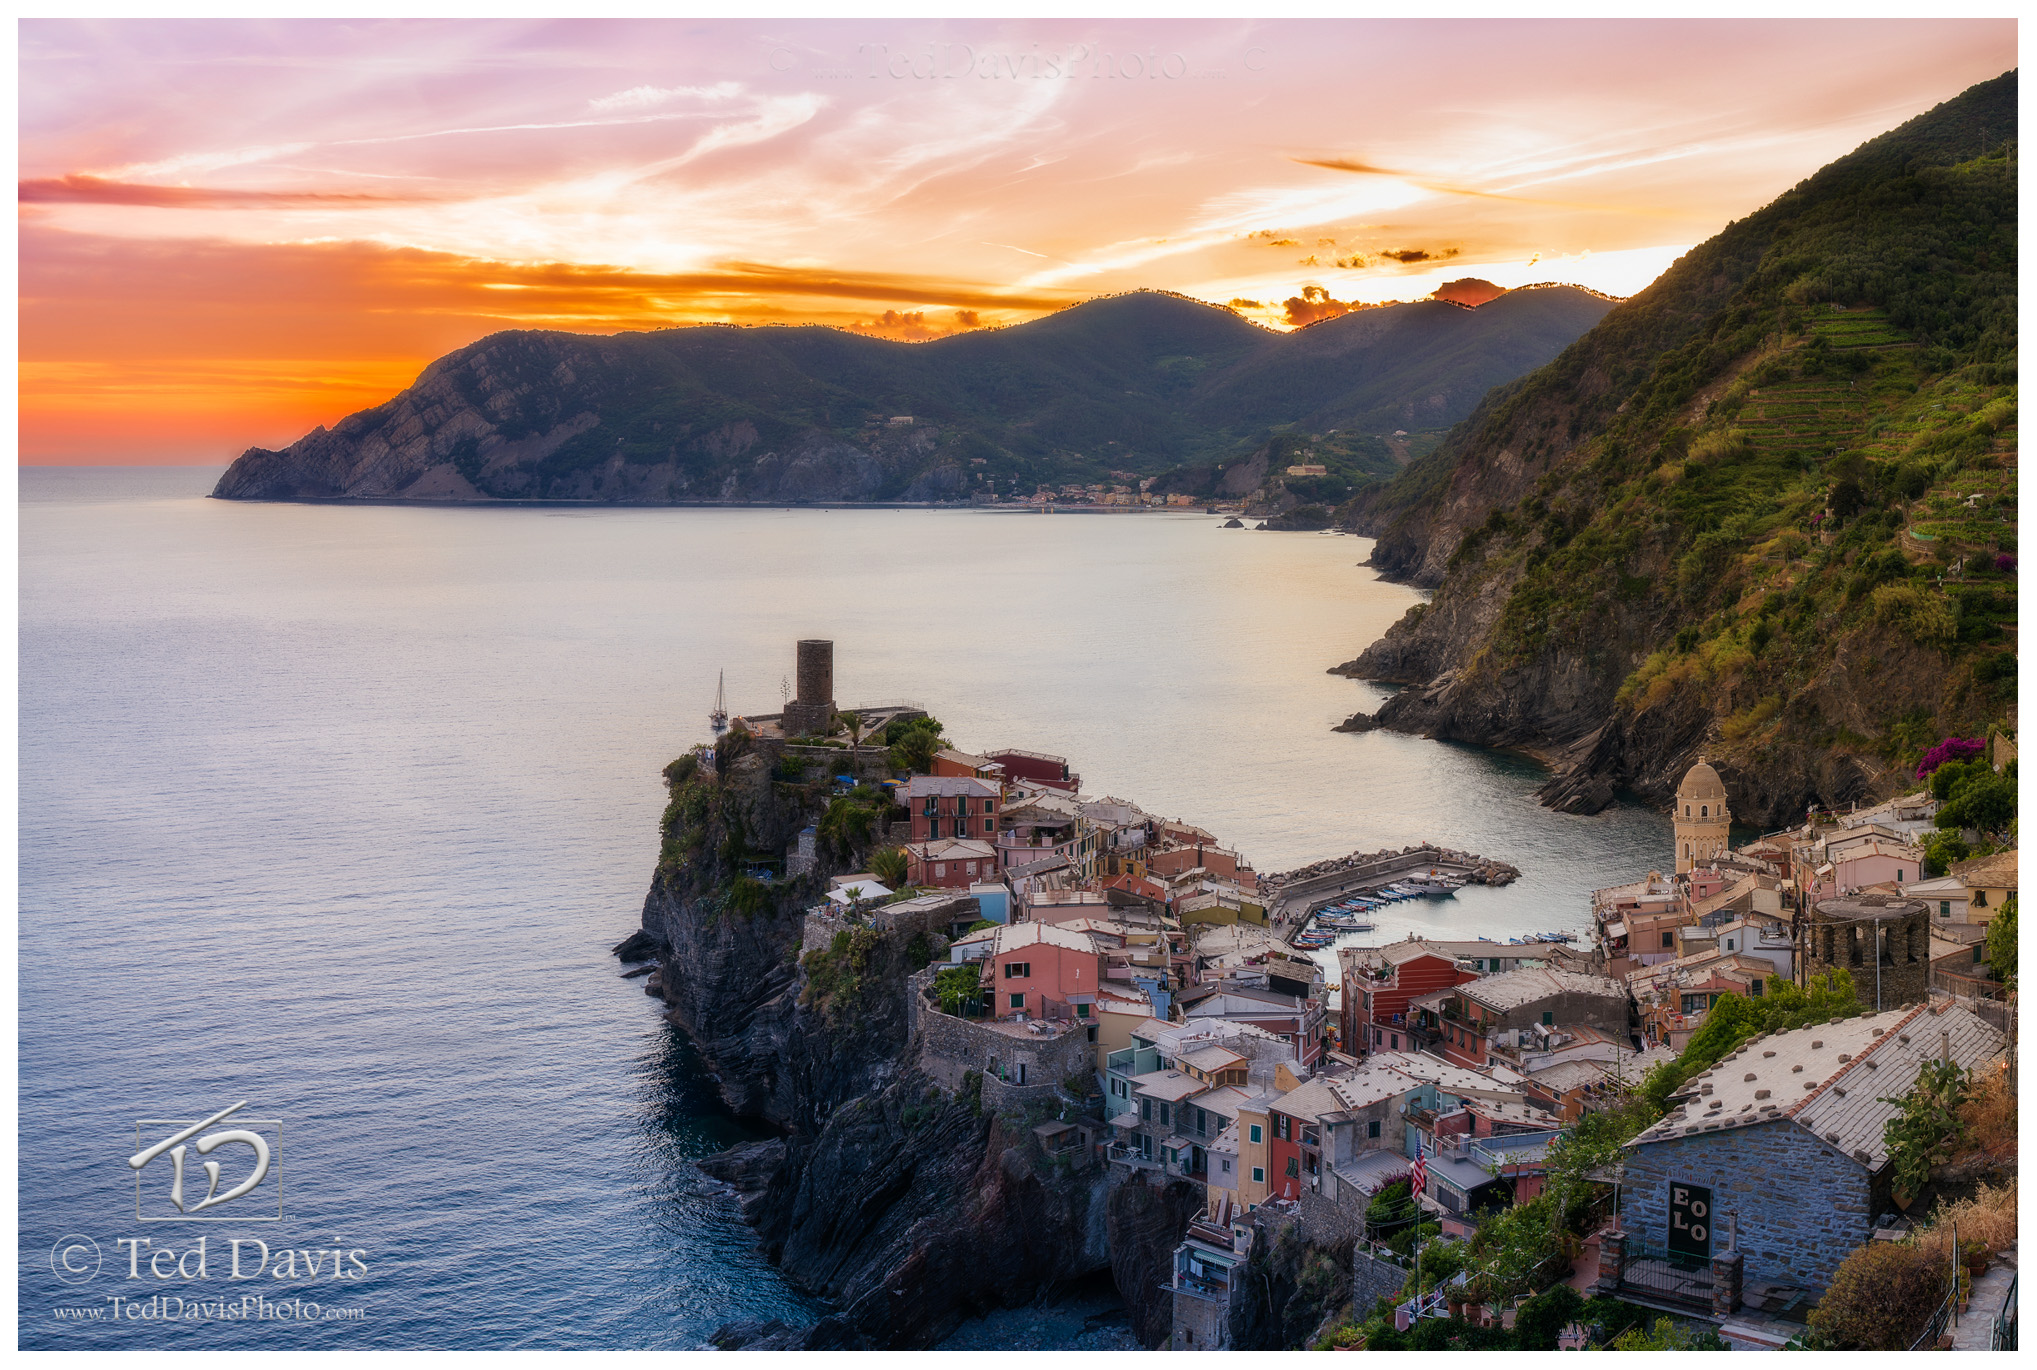 italy, tuscany, cinque terre, sunset, sunrise, vernazza, ancient, beauty, photography, ocean, reflection, backpacking, photo